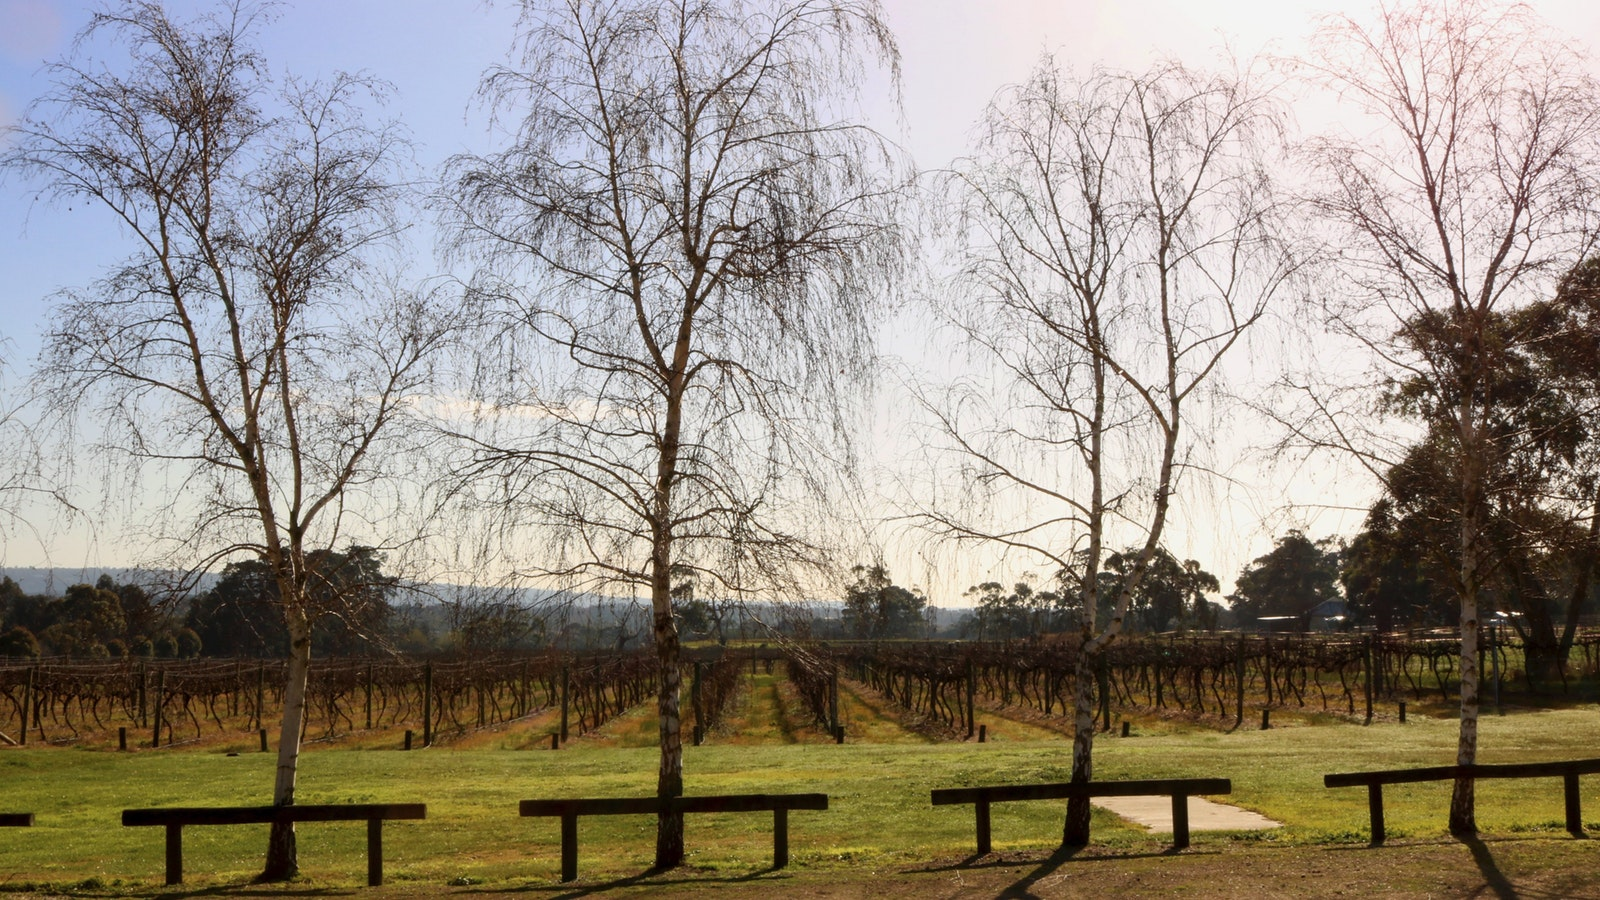 Winter vineyard with Beech trees